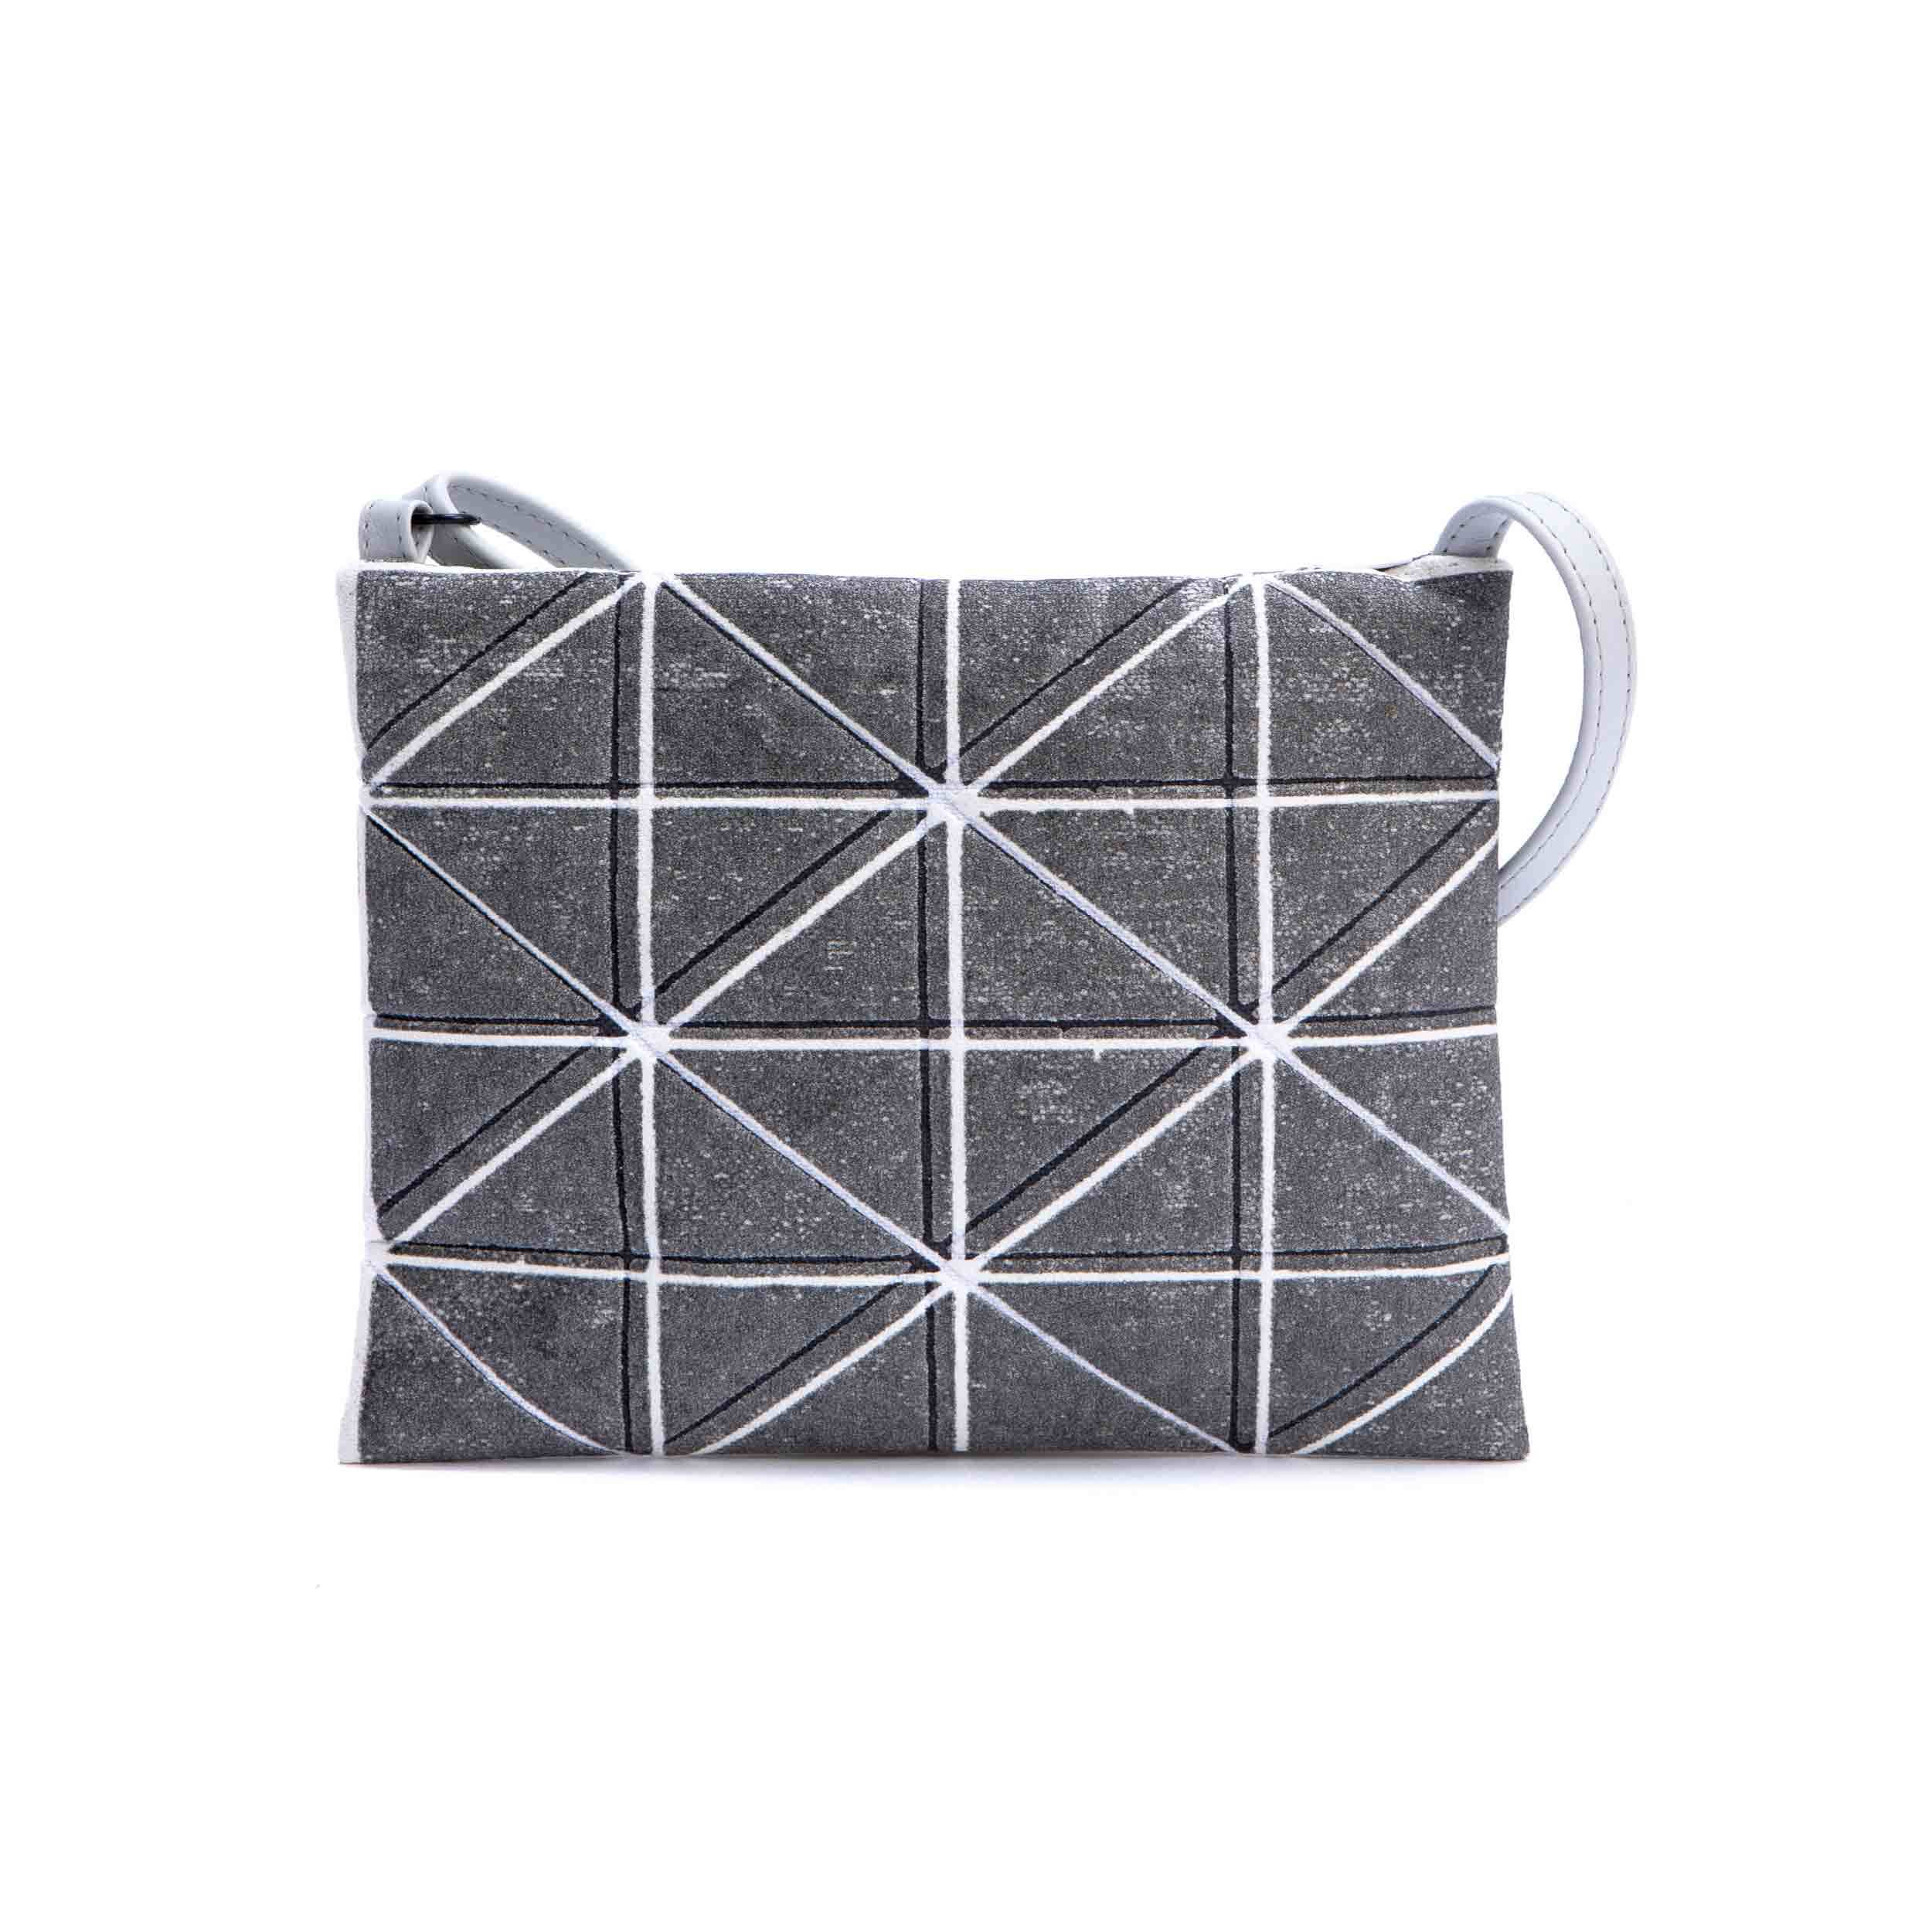 acf14d79e White & Grey Crossbody Bag (Bling)